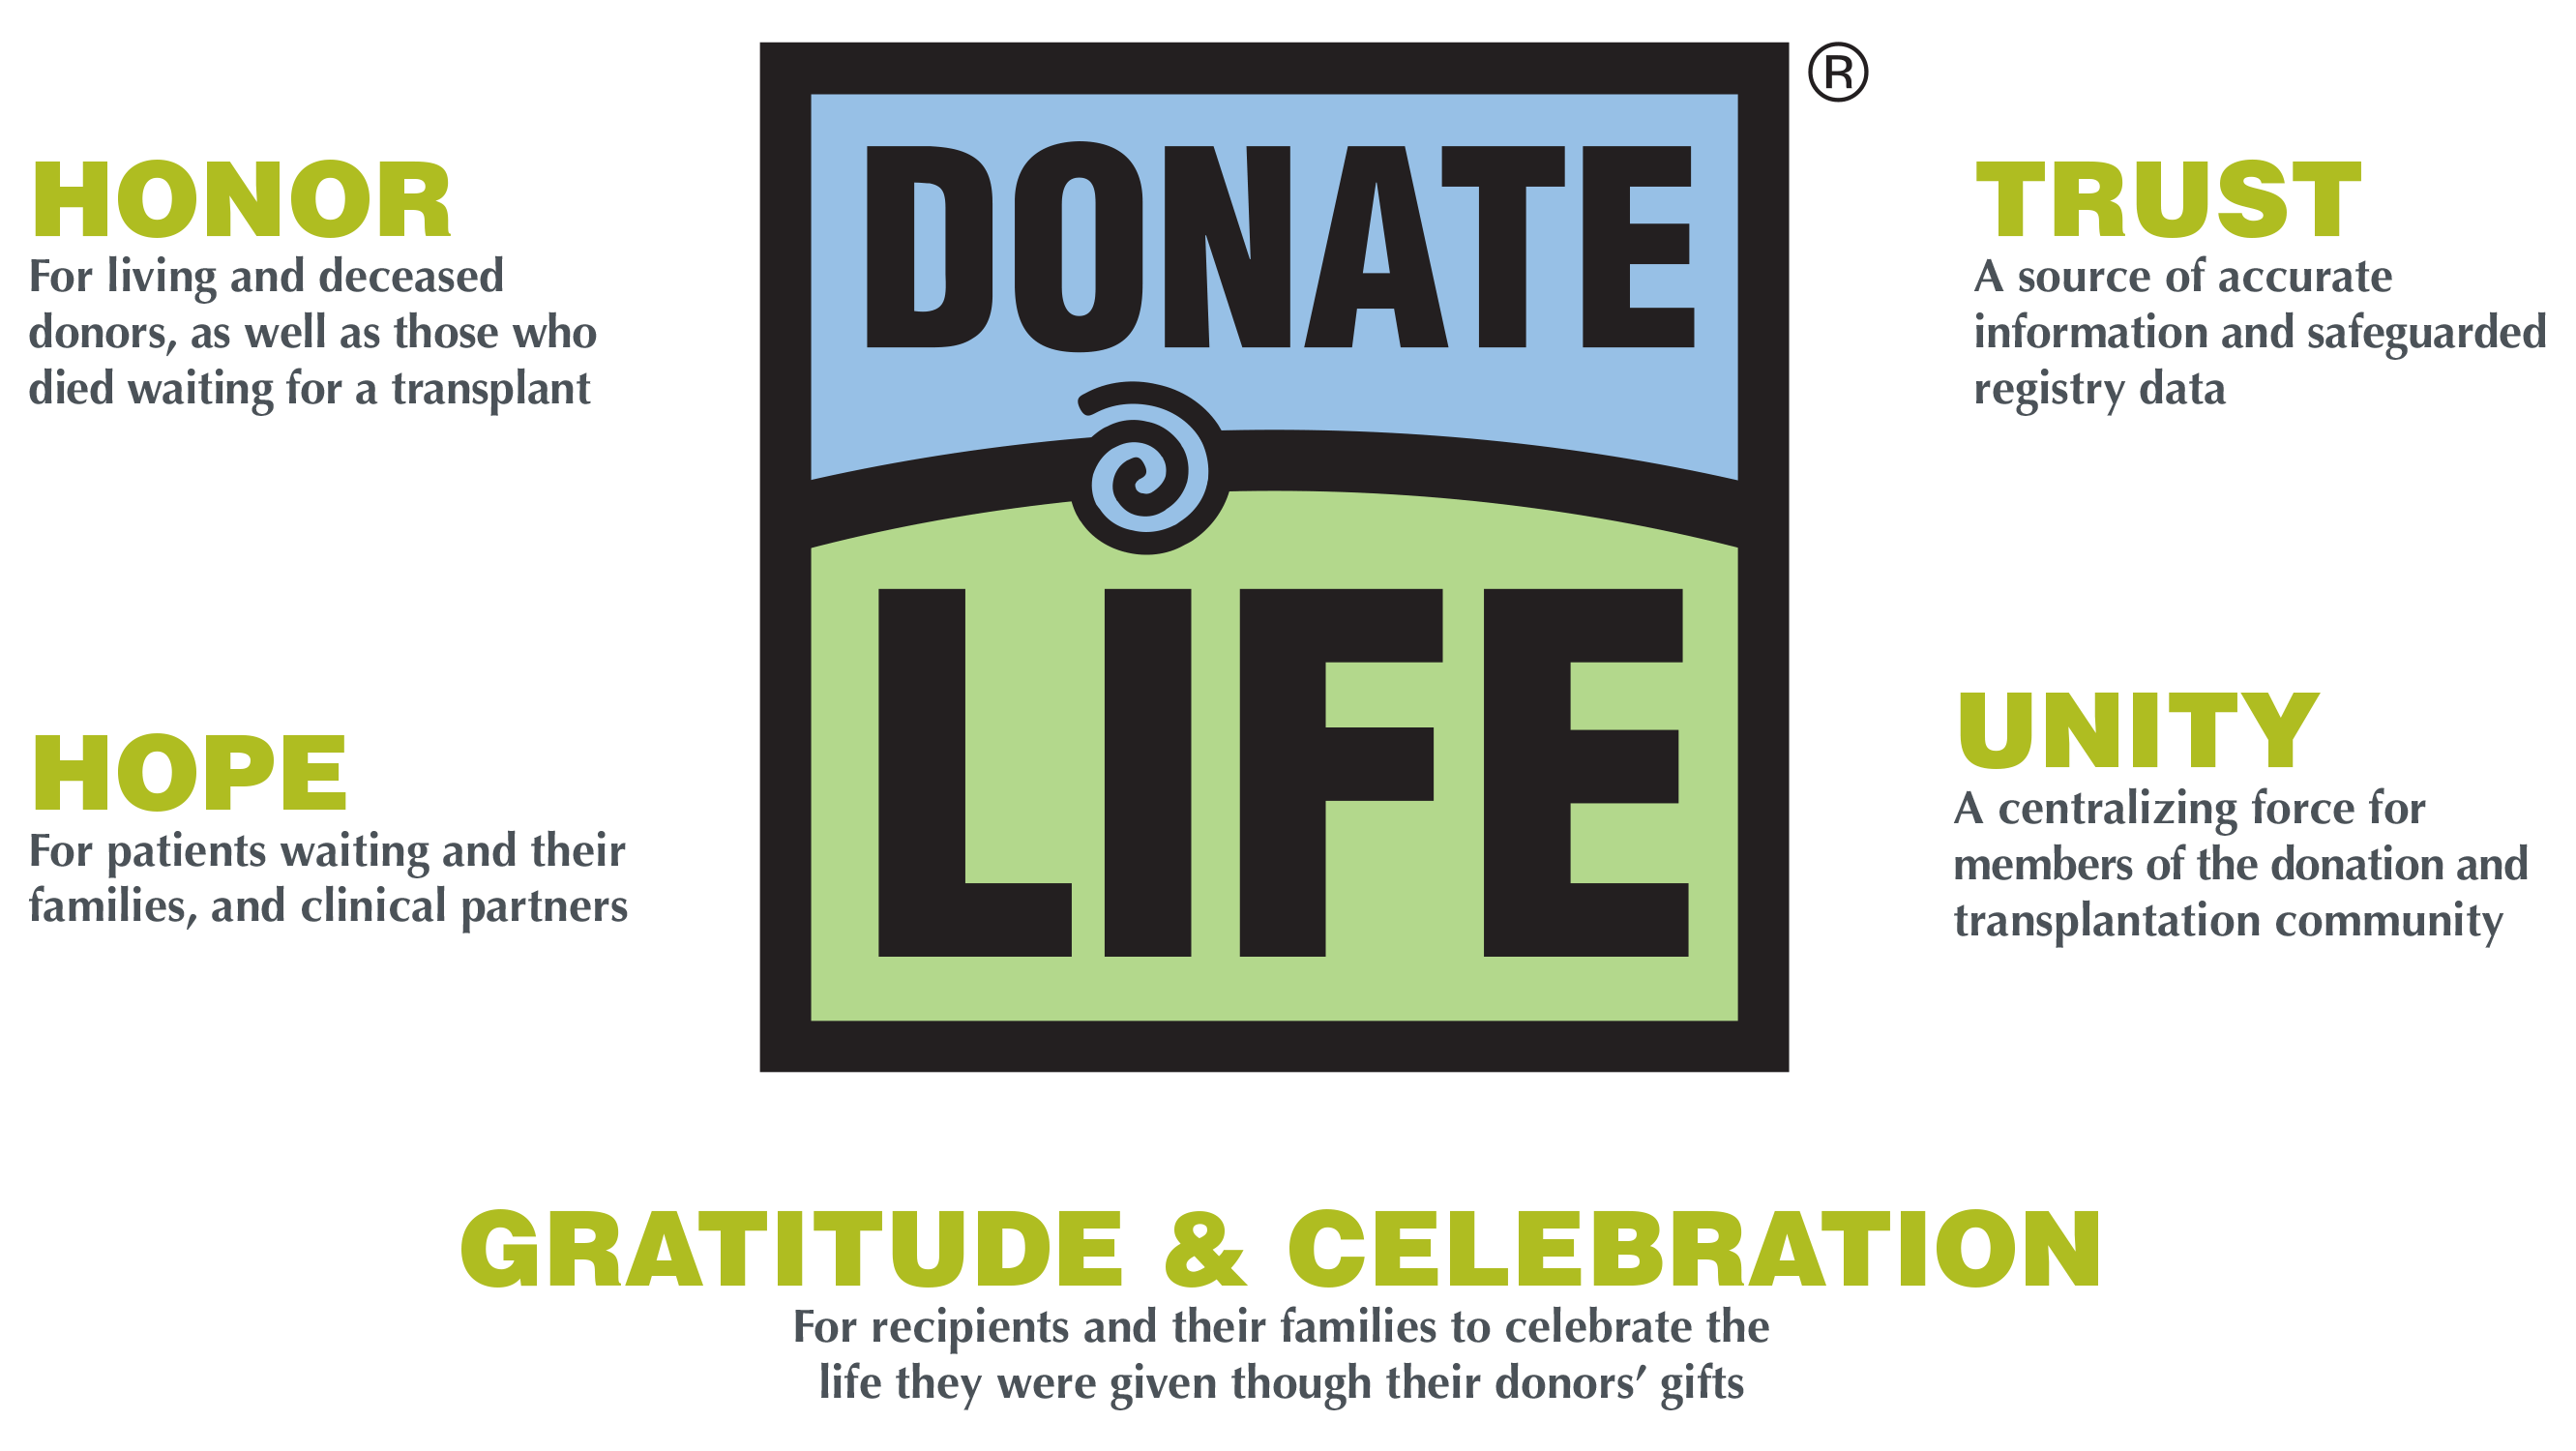 About the Donate Life Brand.